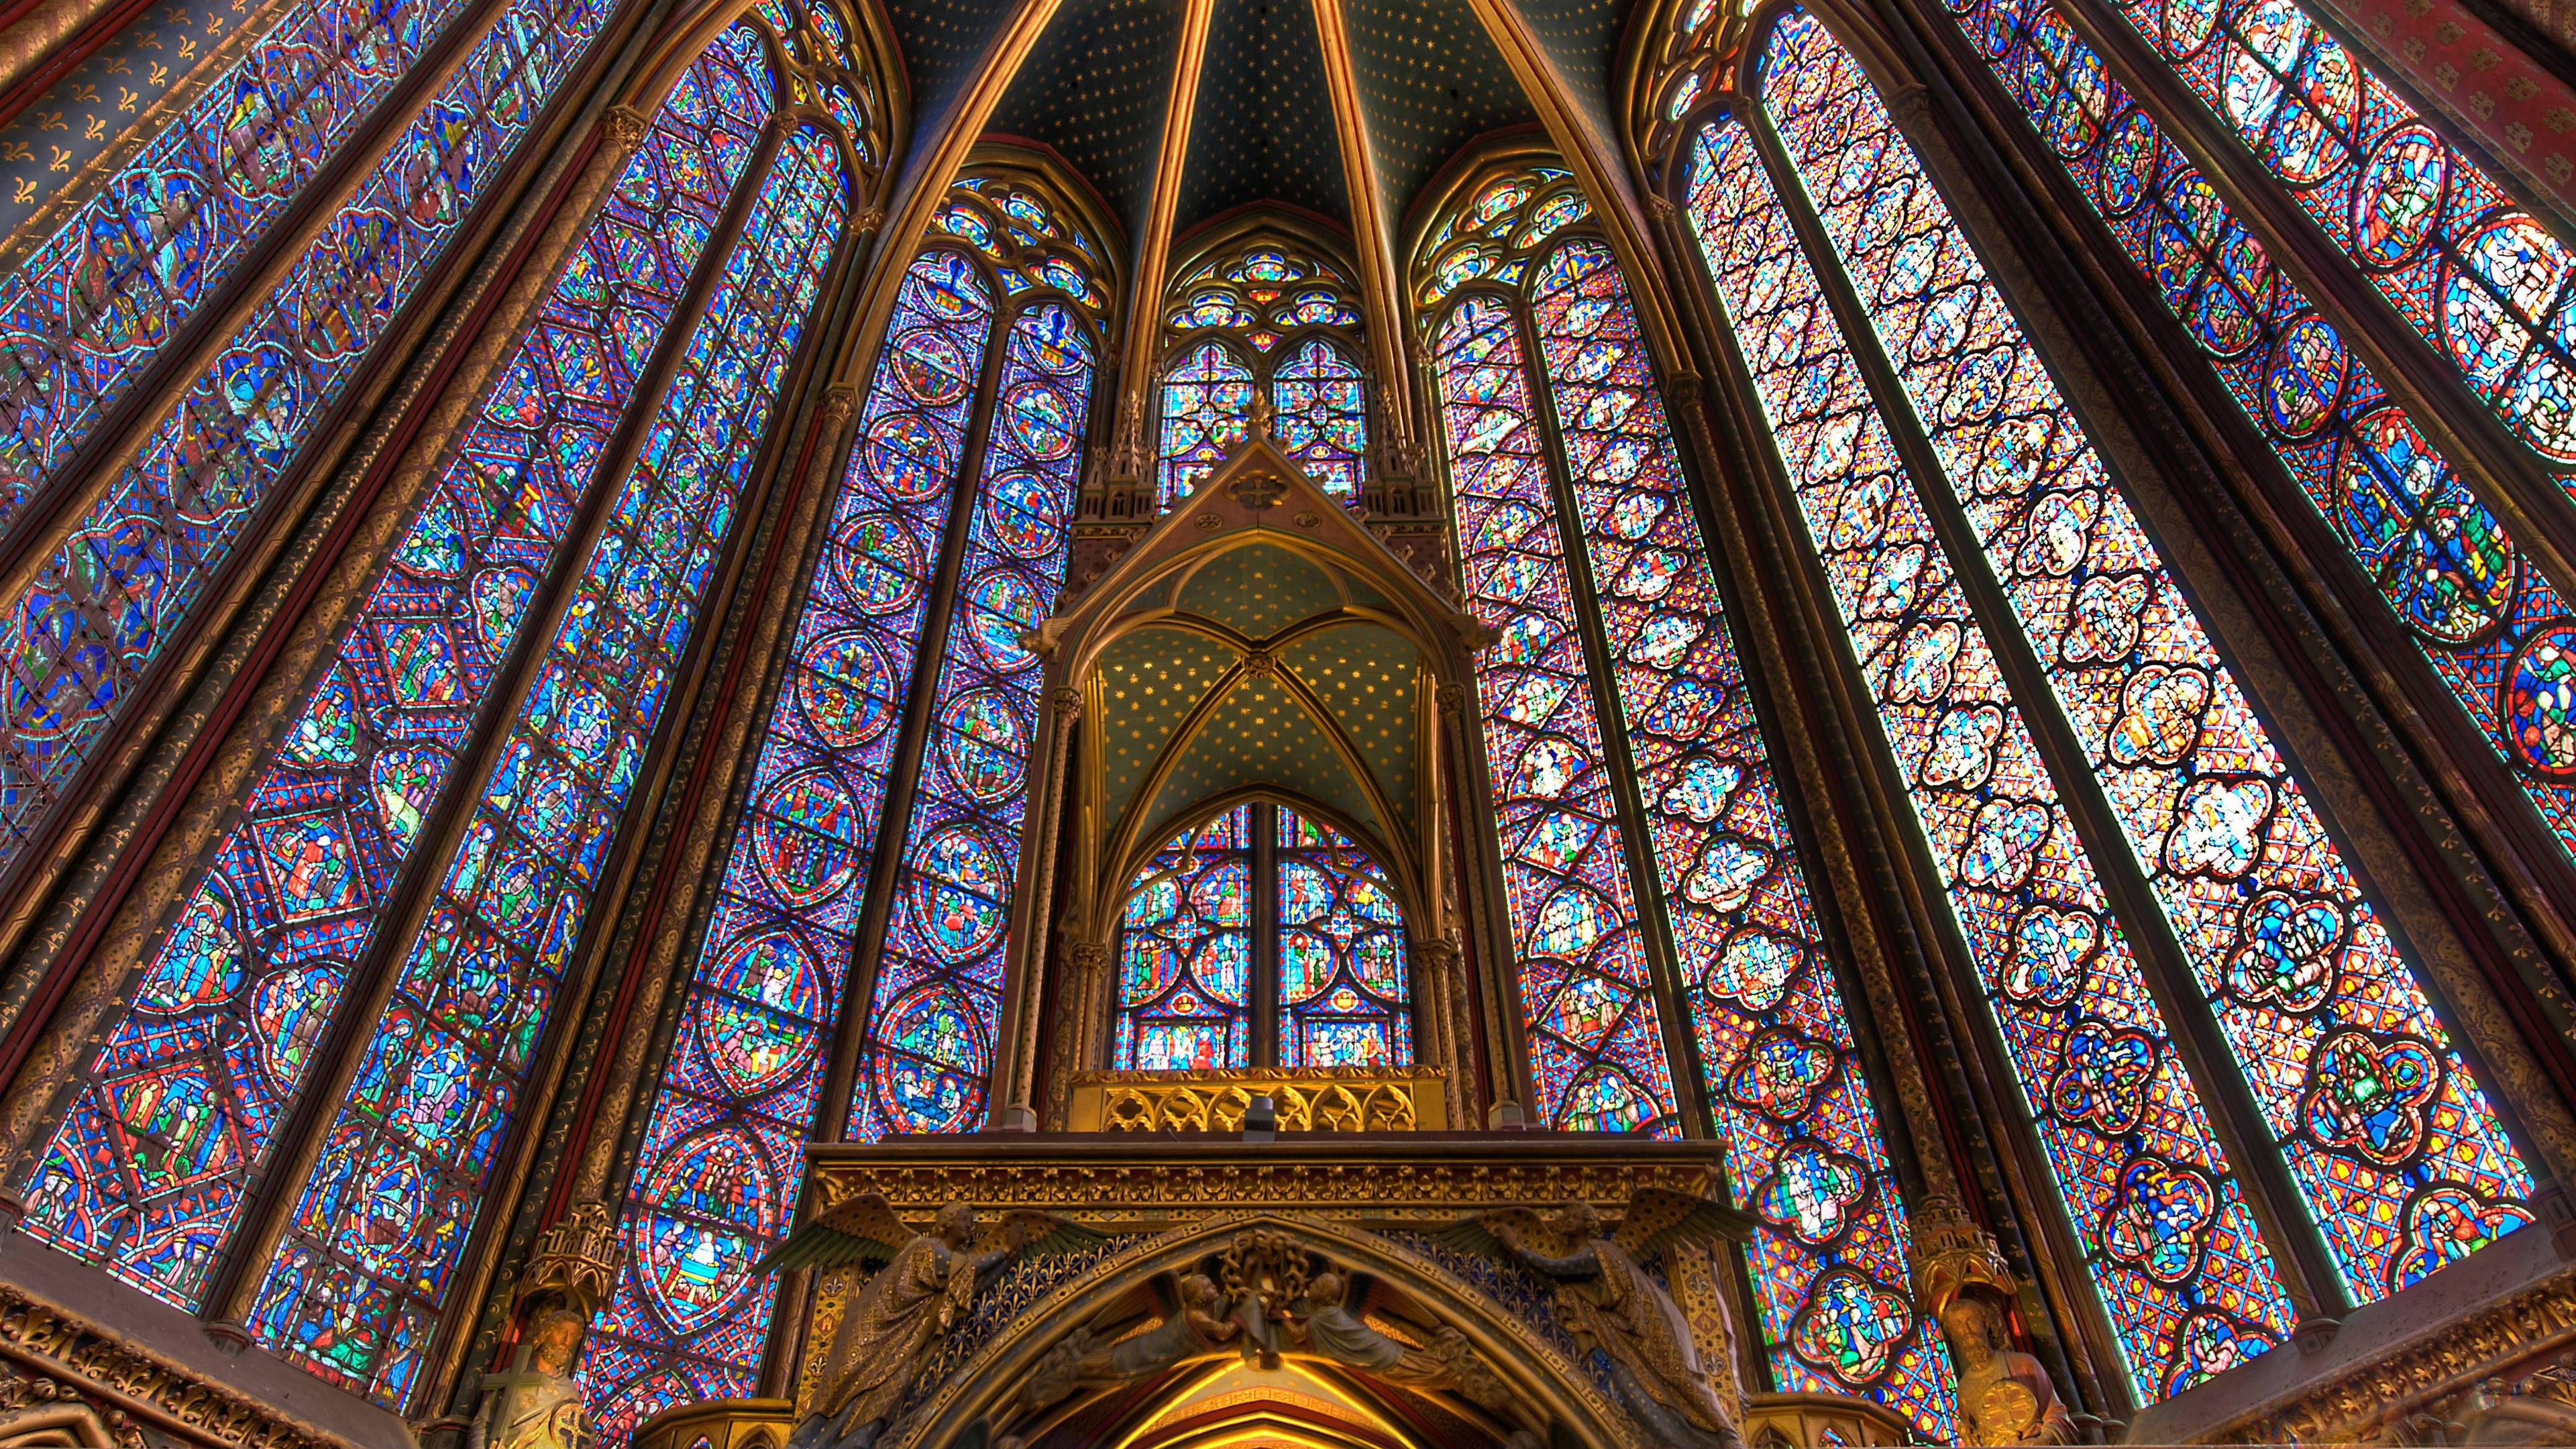 The Most Beautiful Medieval Stained Glass Is In Paris At Sainte Chapelle WQHD Wallpapers